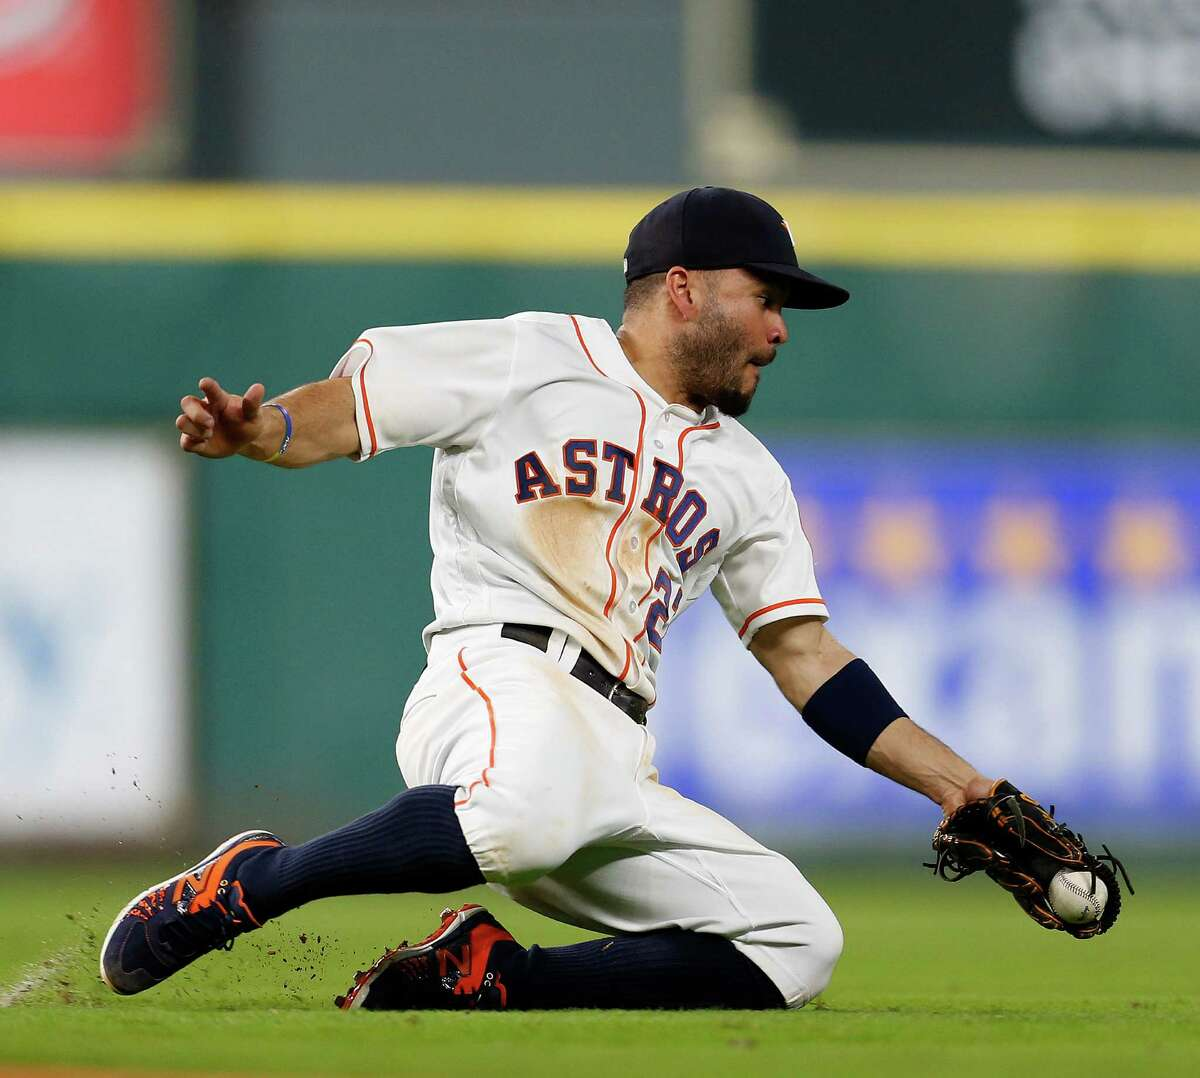 Houston Astros second baseman Jose Altuve (27) just misses catching Baltimore Orioles left fielder Hyun Soo Kim's single in the ninth inning of an MLB baseball game at Minute Maid Park,Thursday, May 26, 2016.